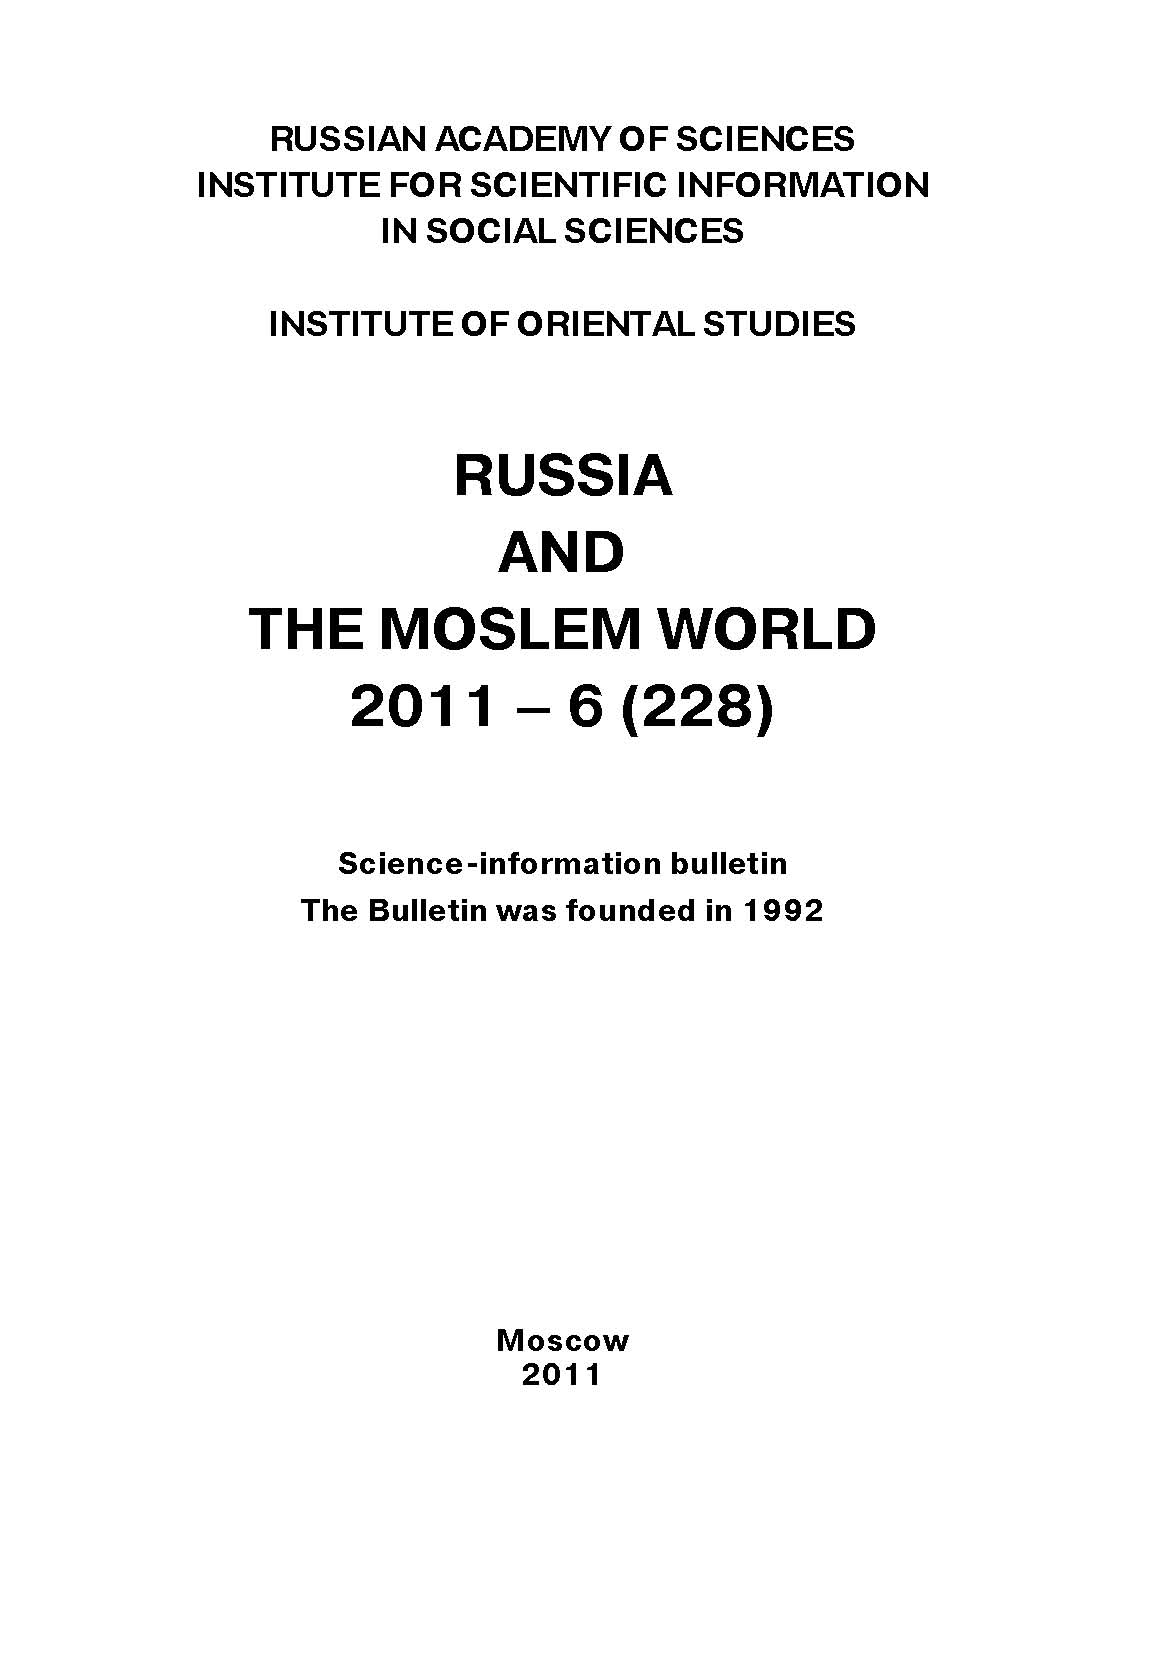 Сборник статей Russia and the Moslem World № 06 / 2011 сборник статей russia and the moslem world 04 2011